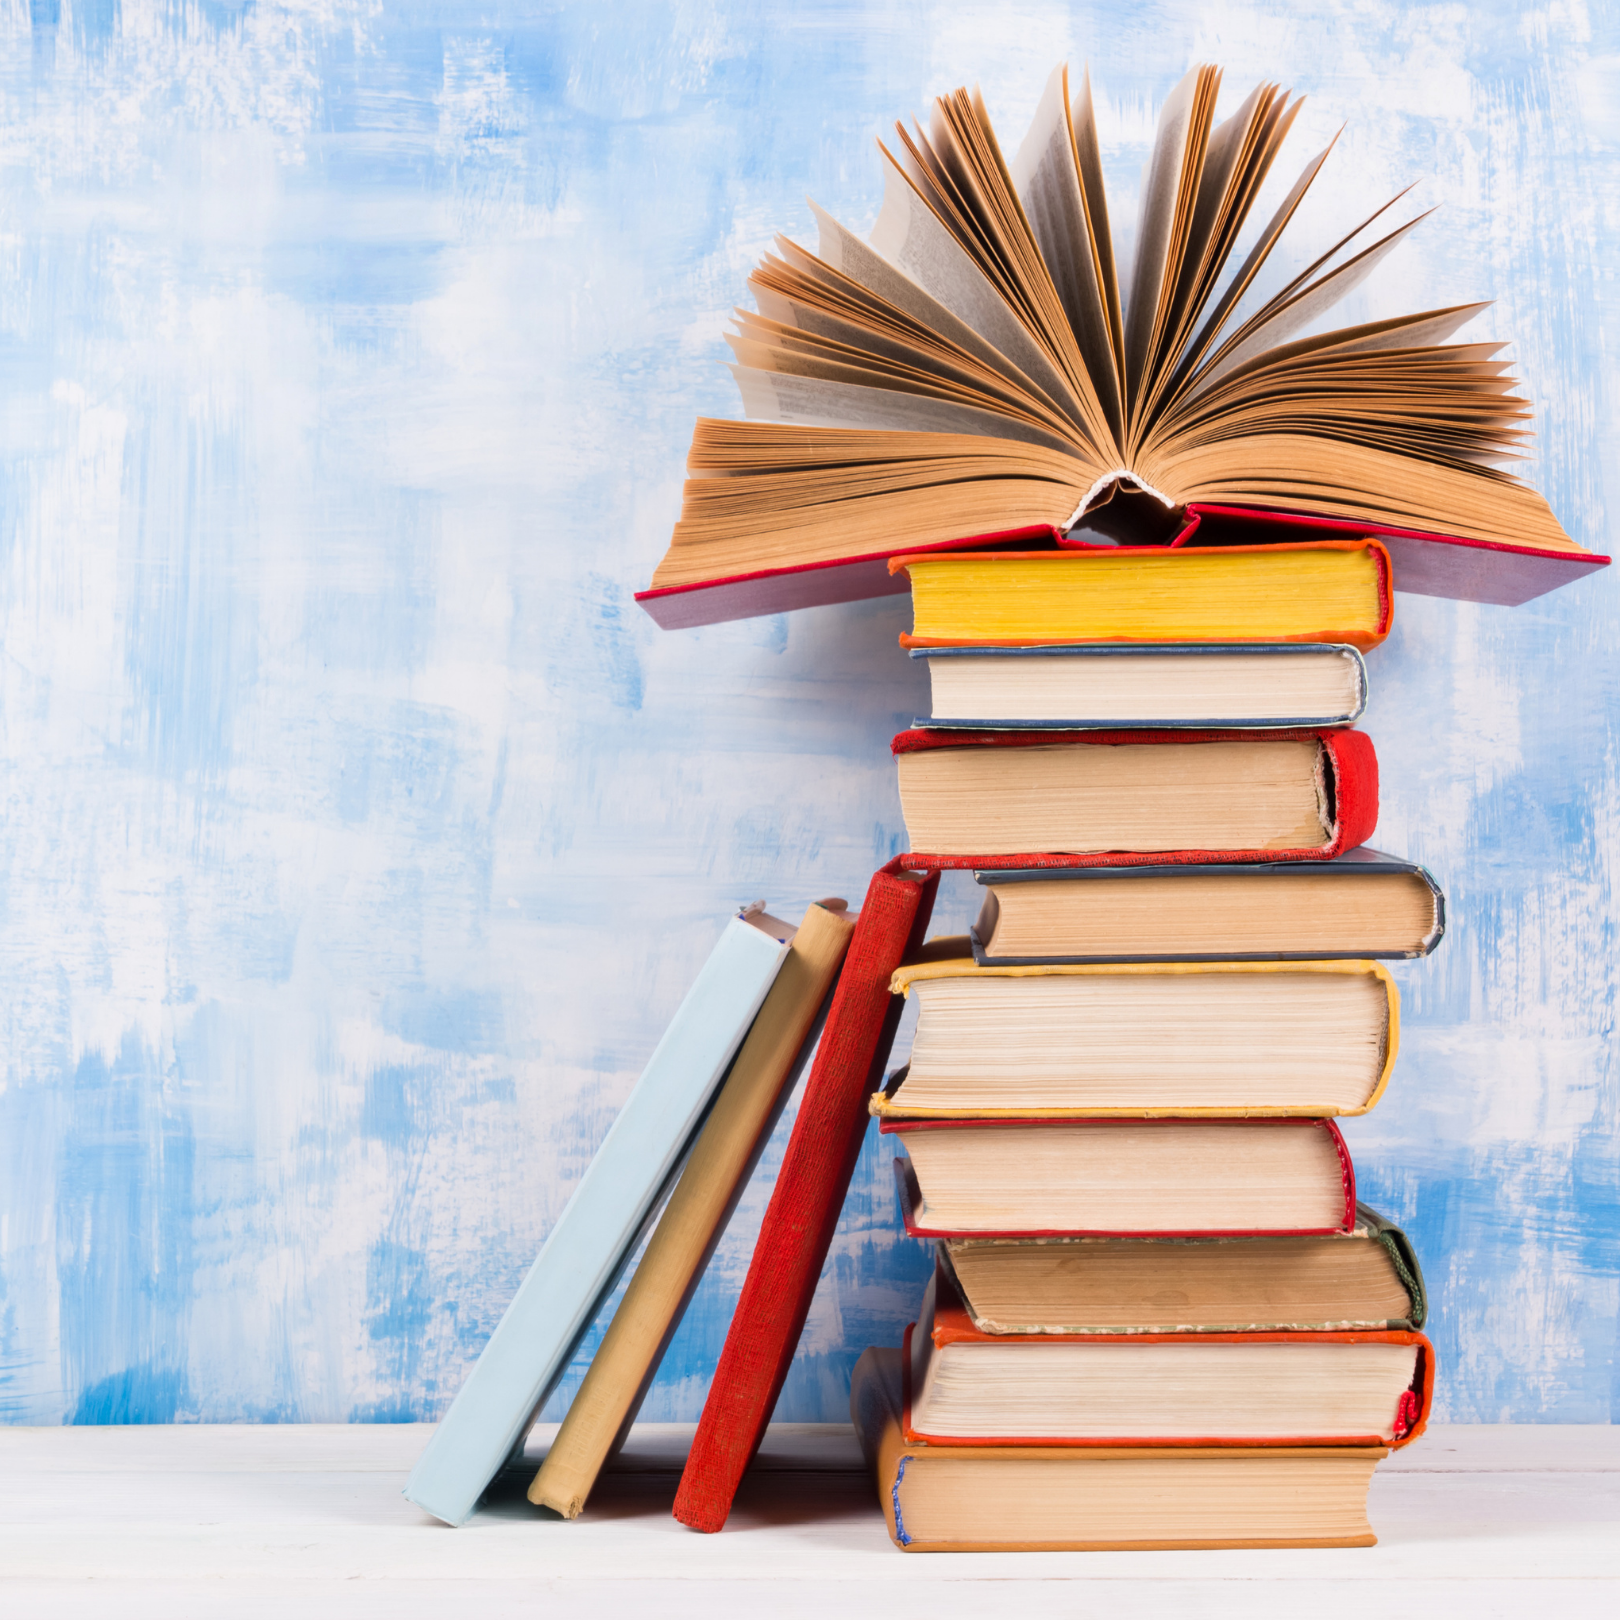 a stack of books in front of a blue background with the top book open